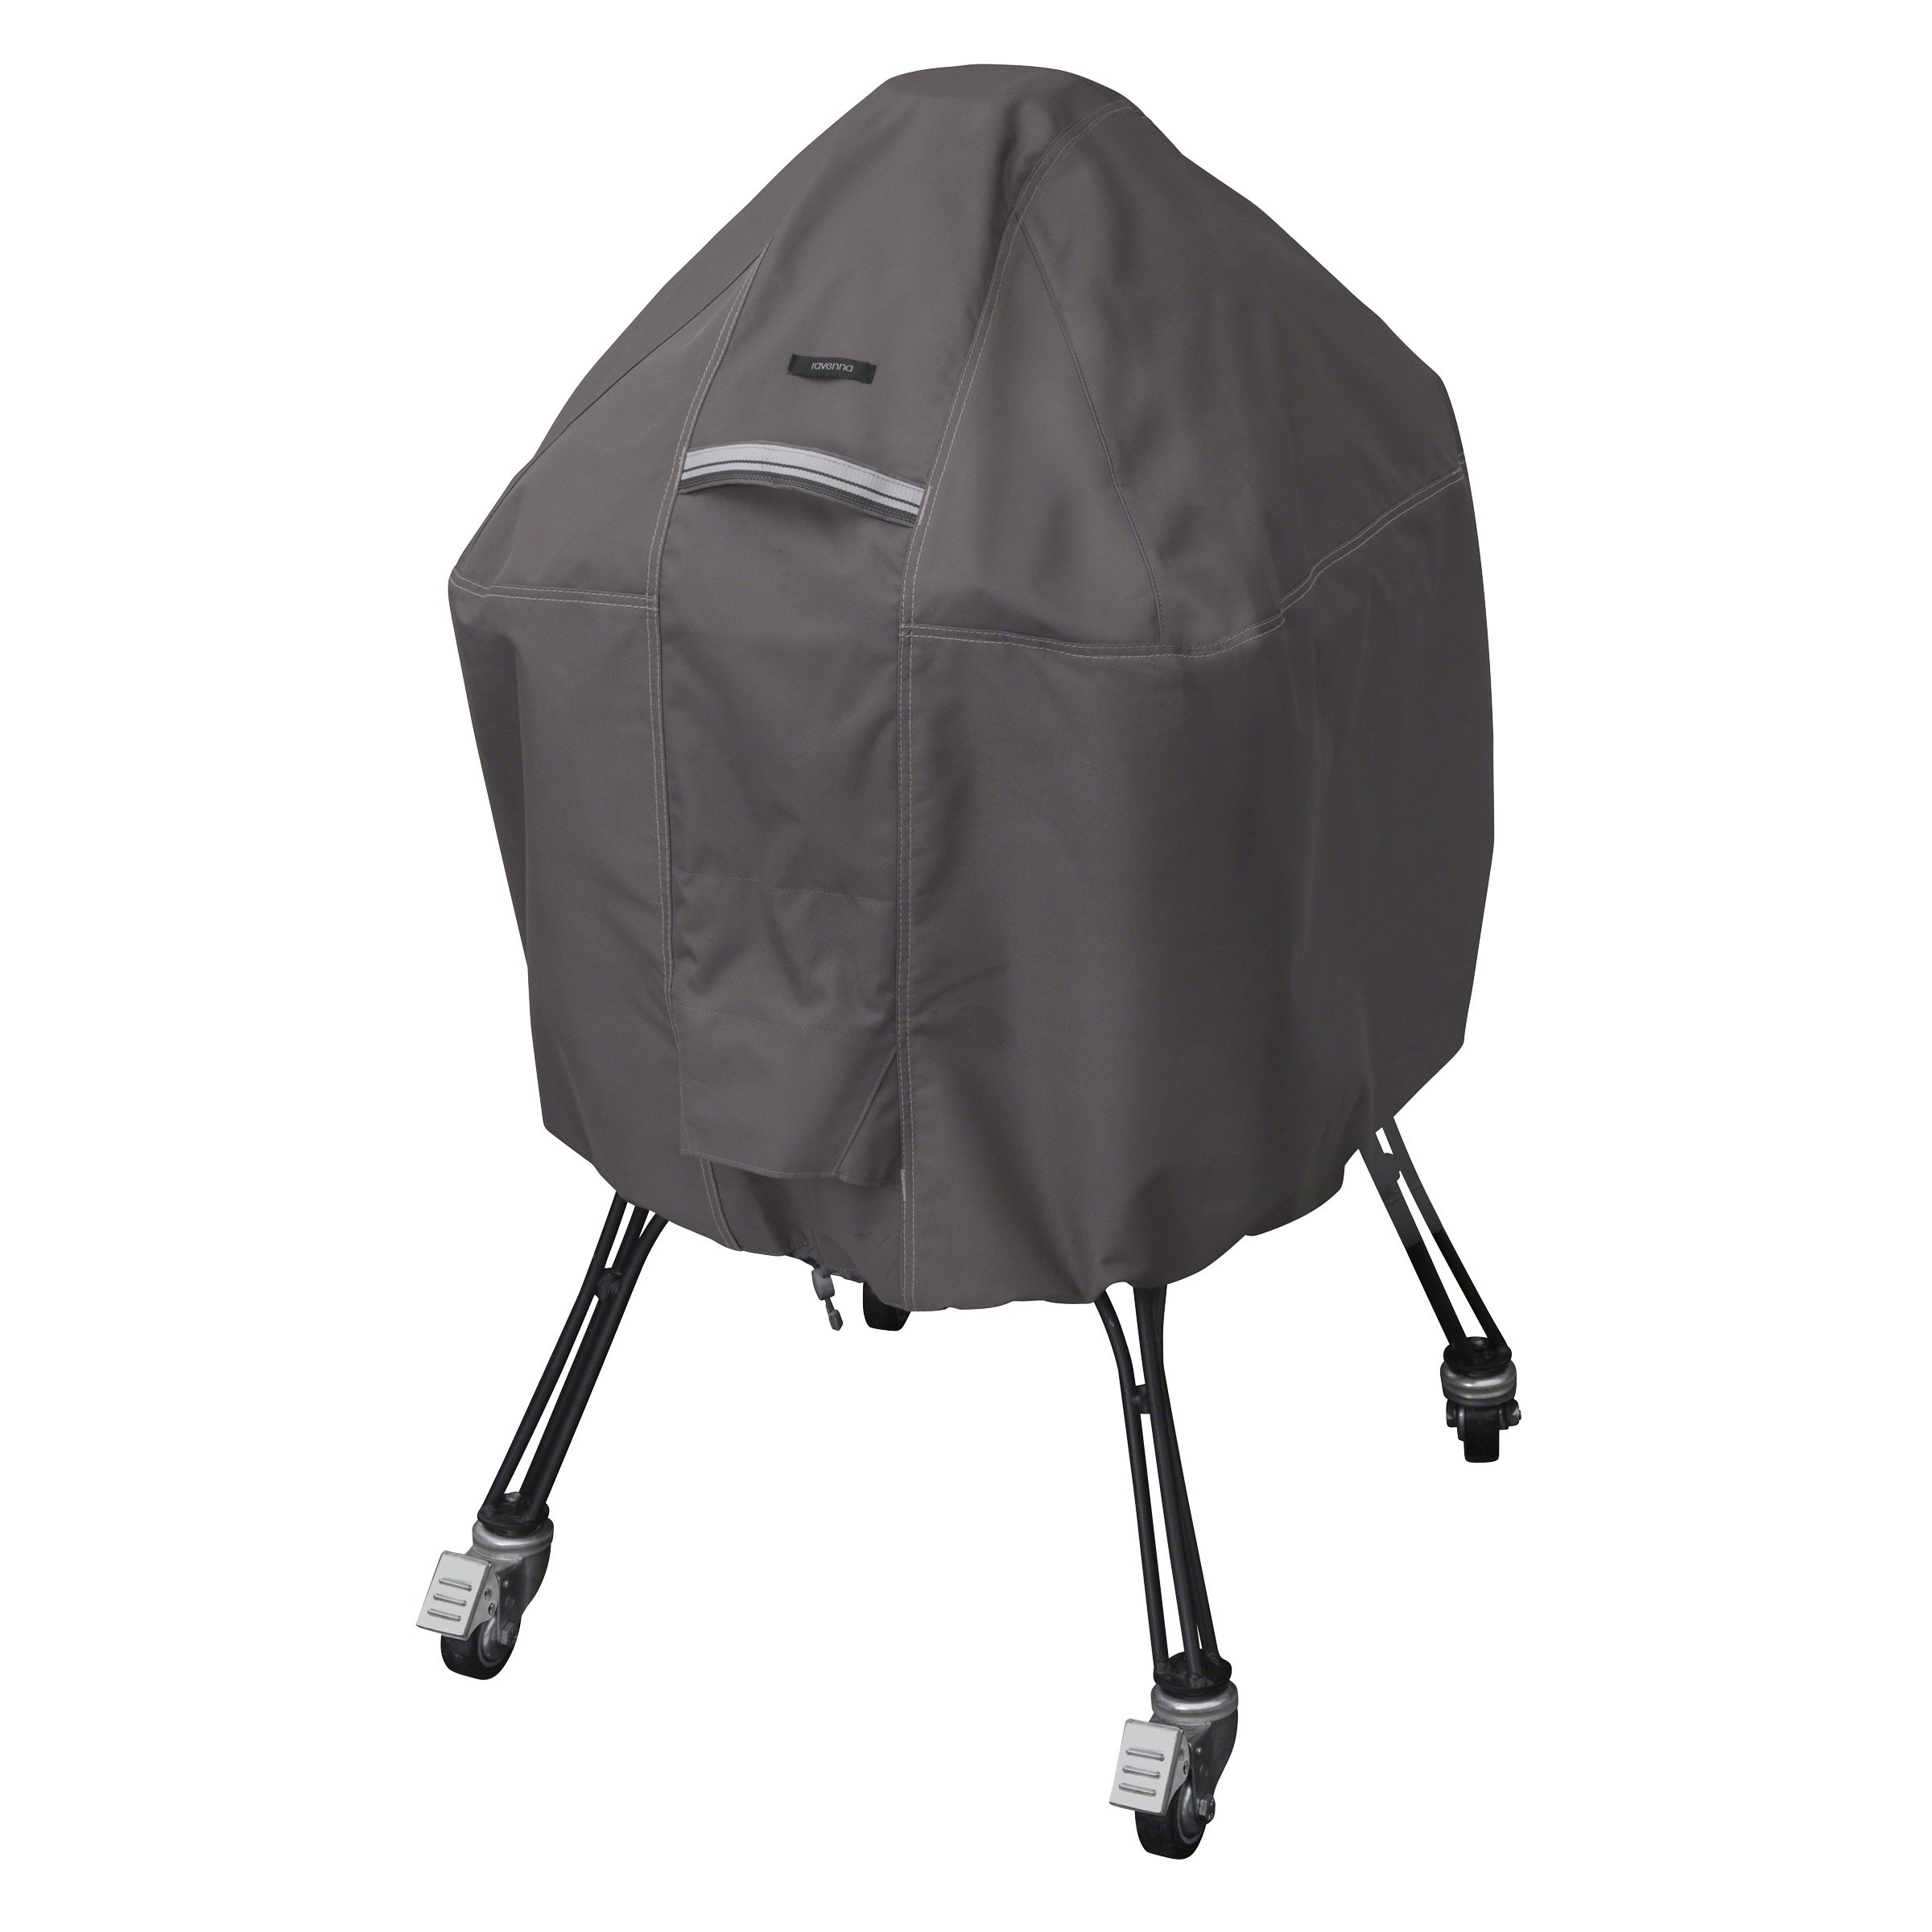 Classic Accessories Ravenna Water-Resistant 22 Inch Kamado Ceramic BBQ Grill Cover